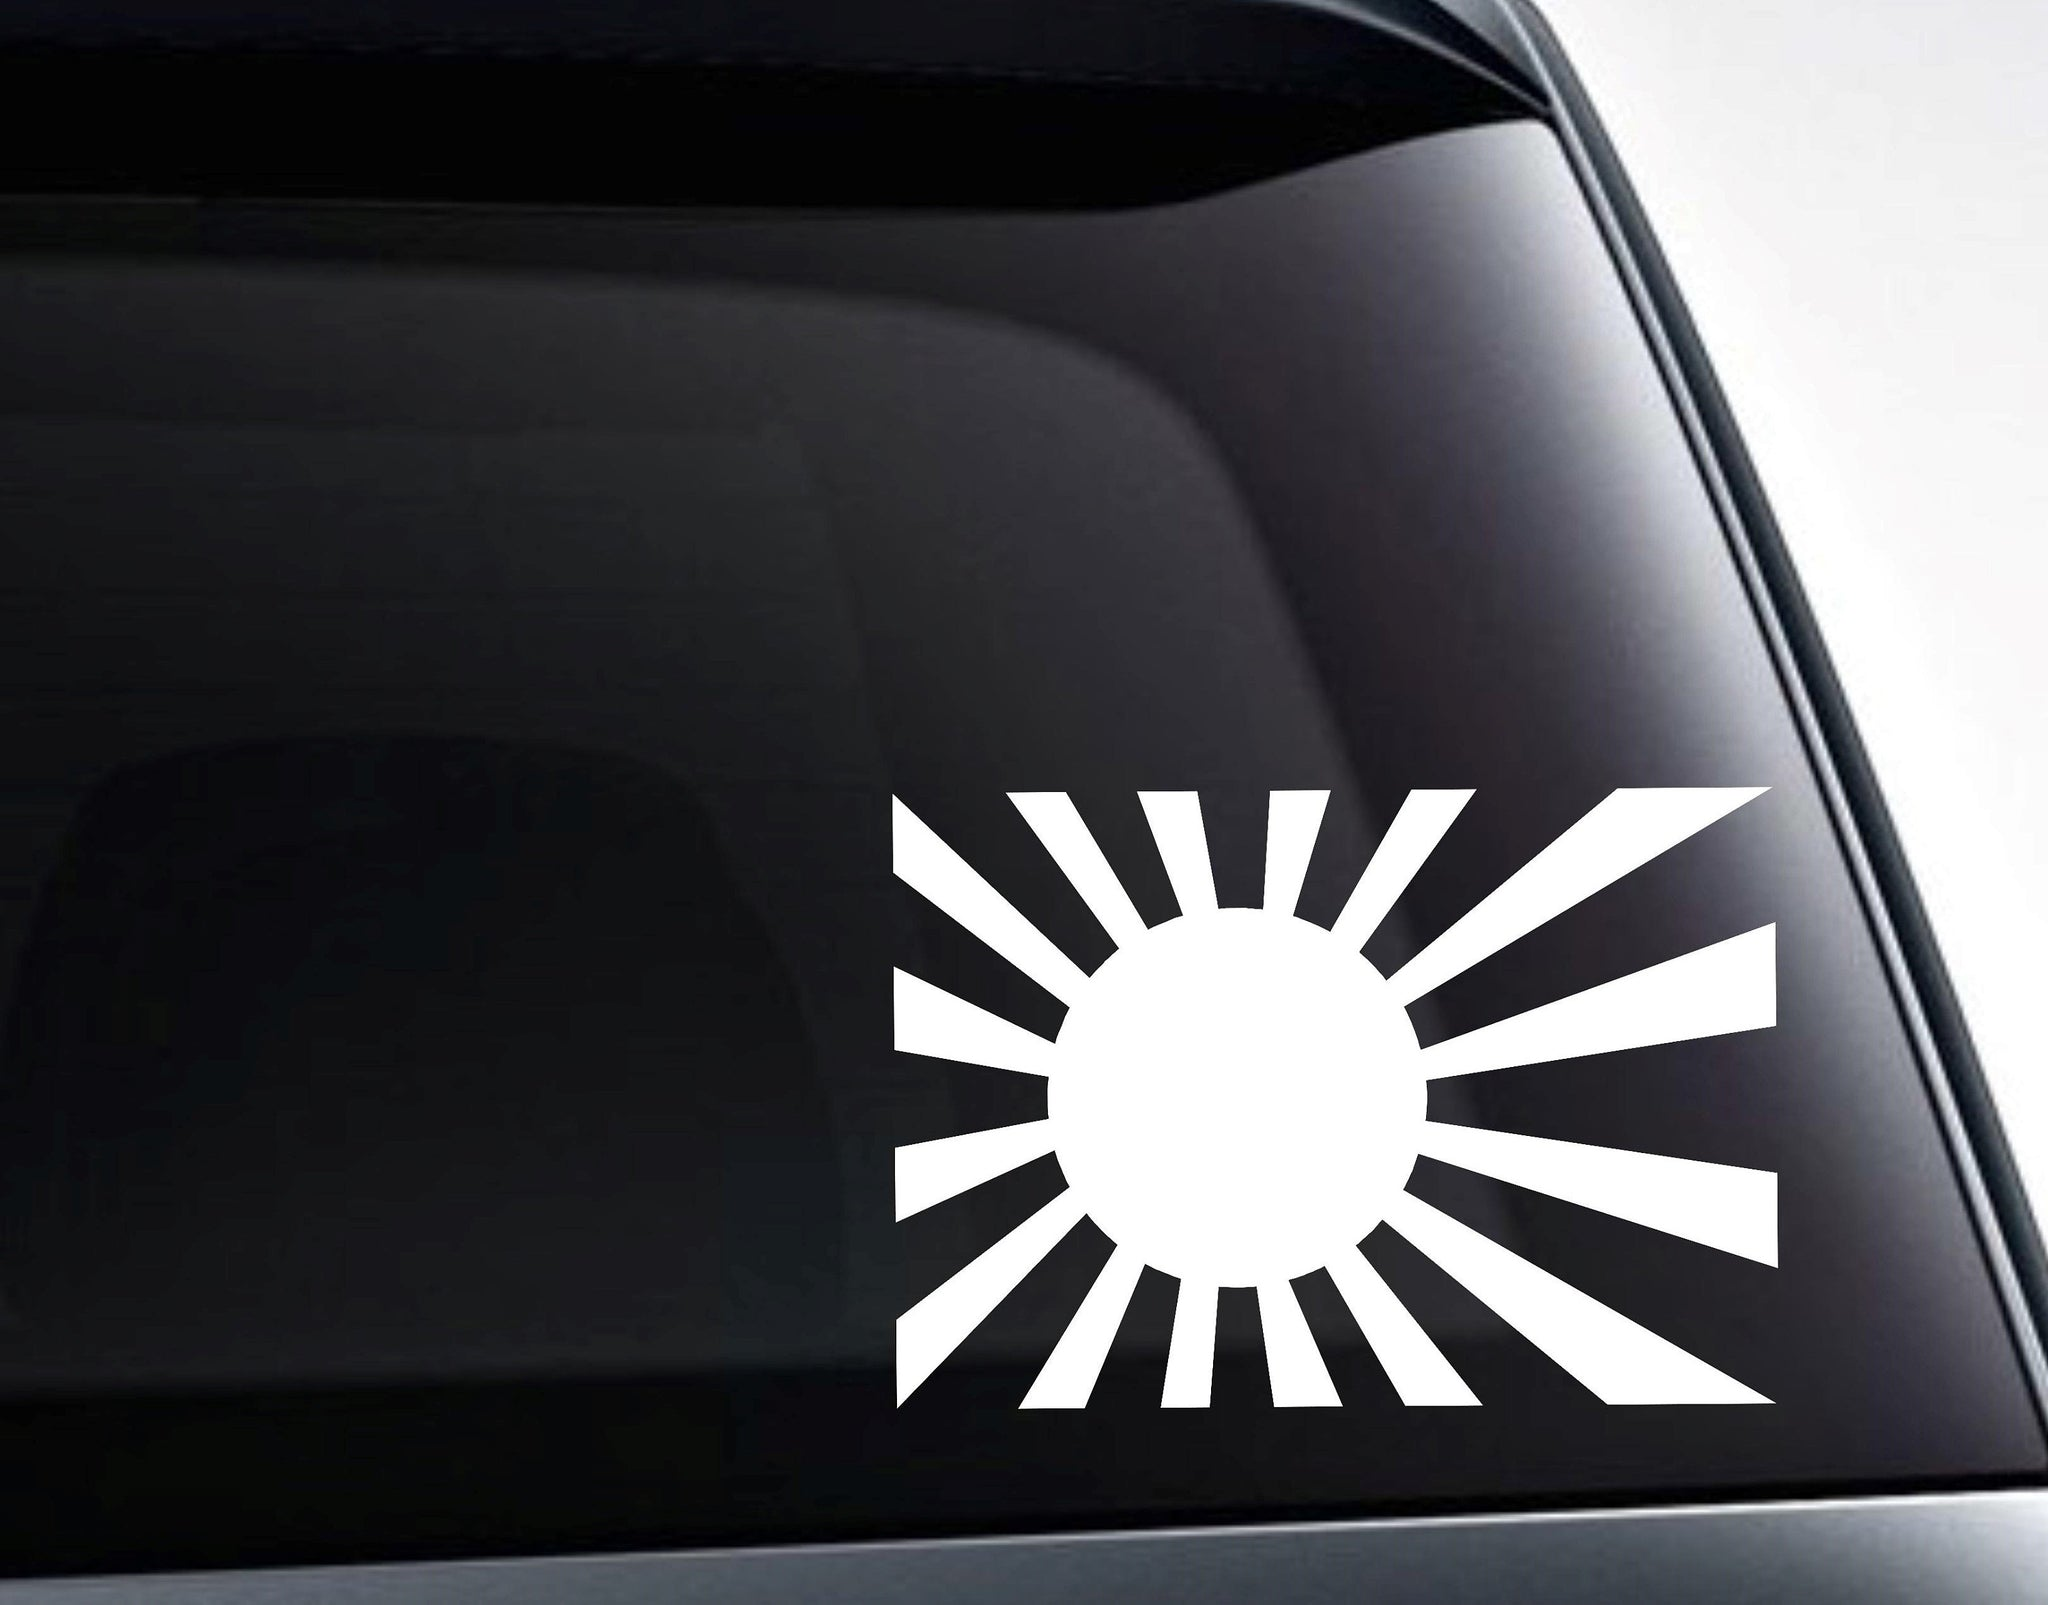 Japan Rising Sun Naval Flag Vinyl Decal Sticker